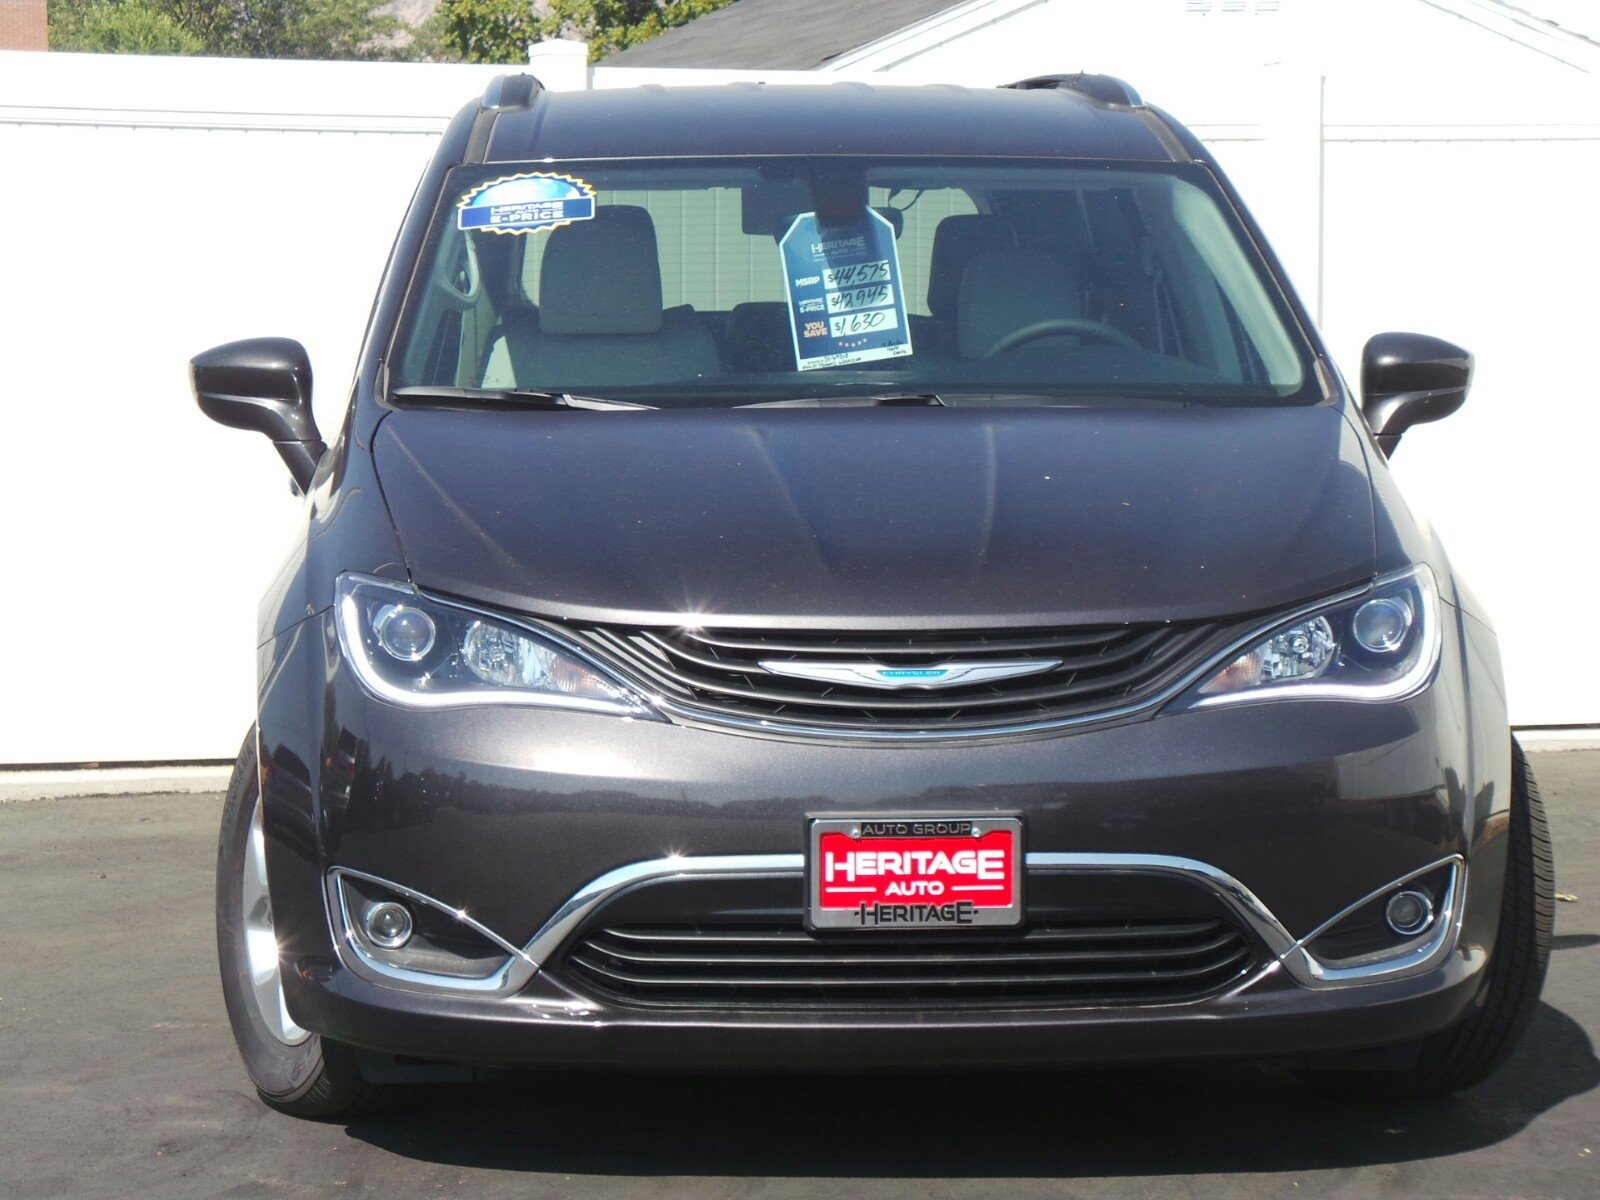 New 2018 Chrysler Pacifica Hybrid Touring L Mini Van Passenger Also 2006 Chevy Equinox Abs Traction Control Sensor